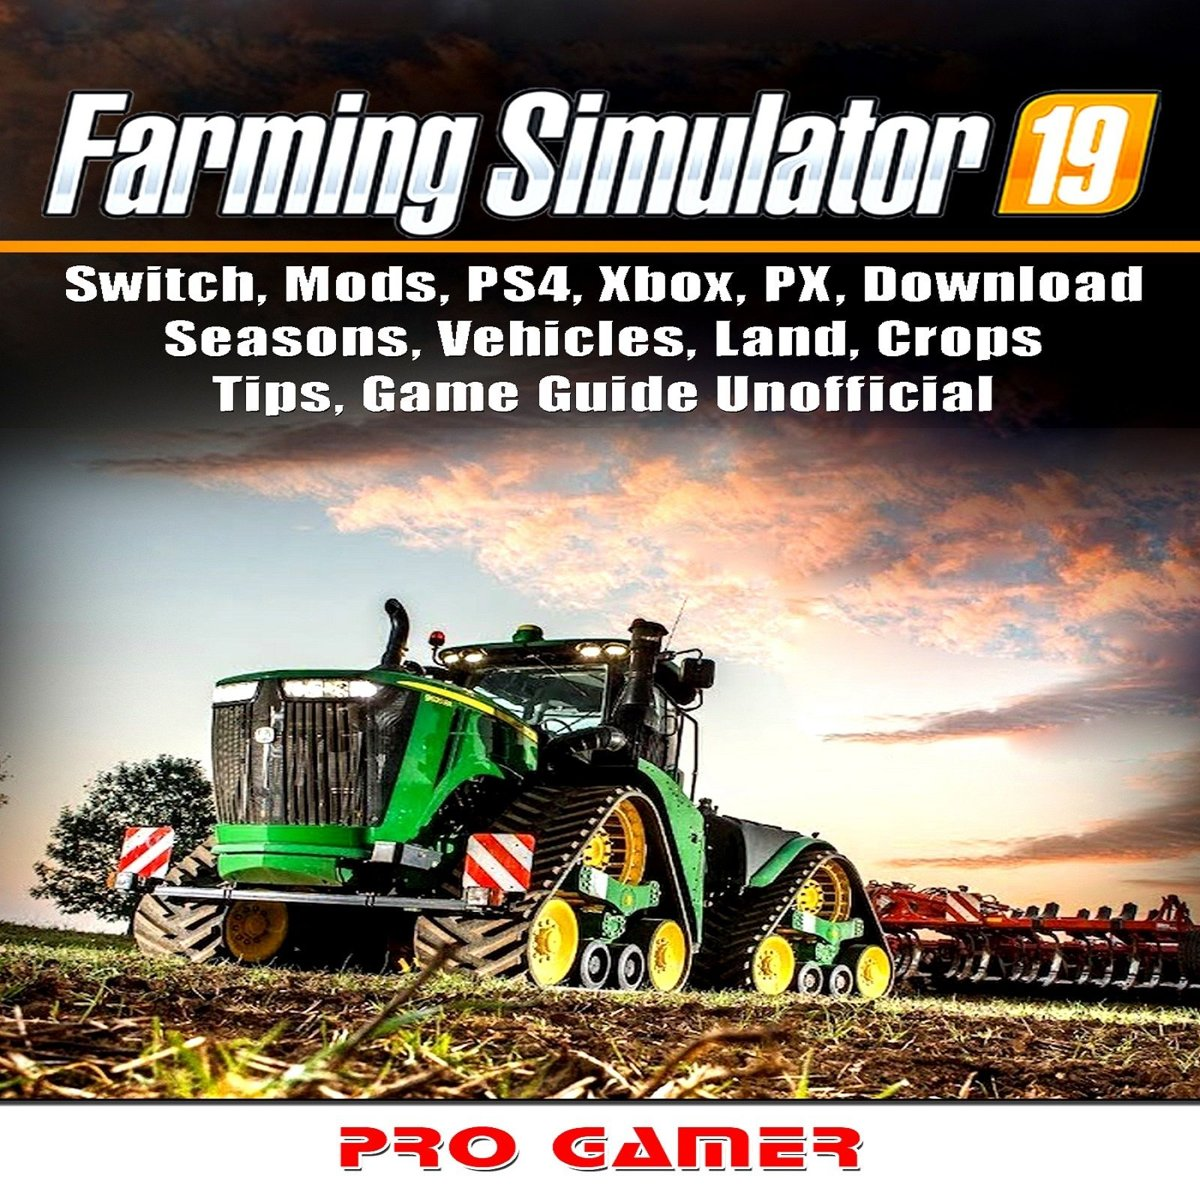 Farming Simulator 19, Switch, Mods, PS4, Xbox, PX, Download, Seasons, Vehicles, Land, Crops, Tips, Game Guide Unofficial